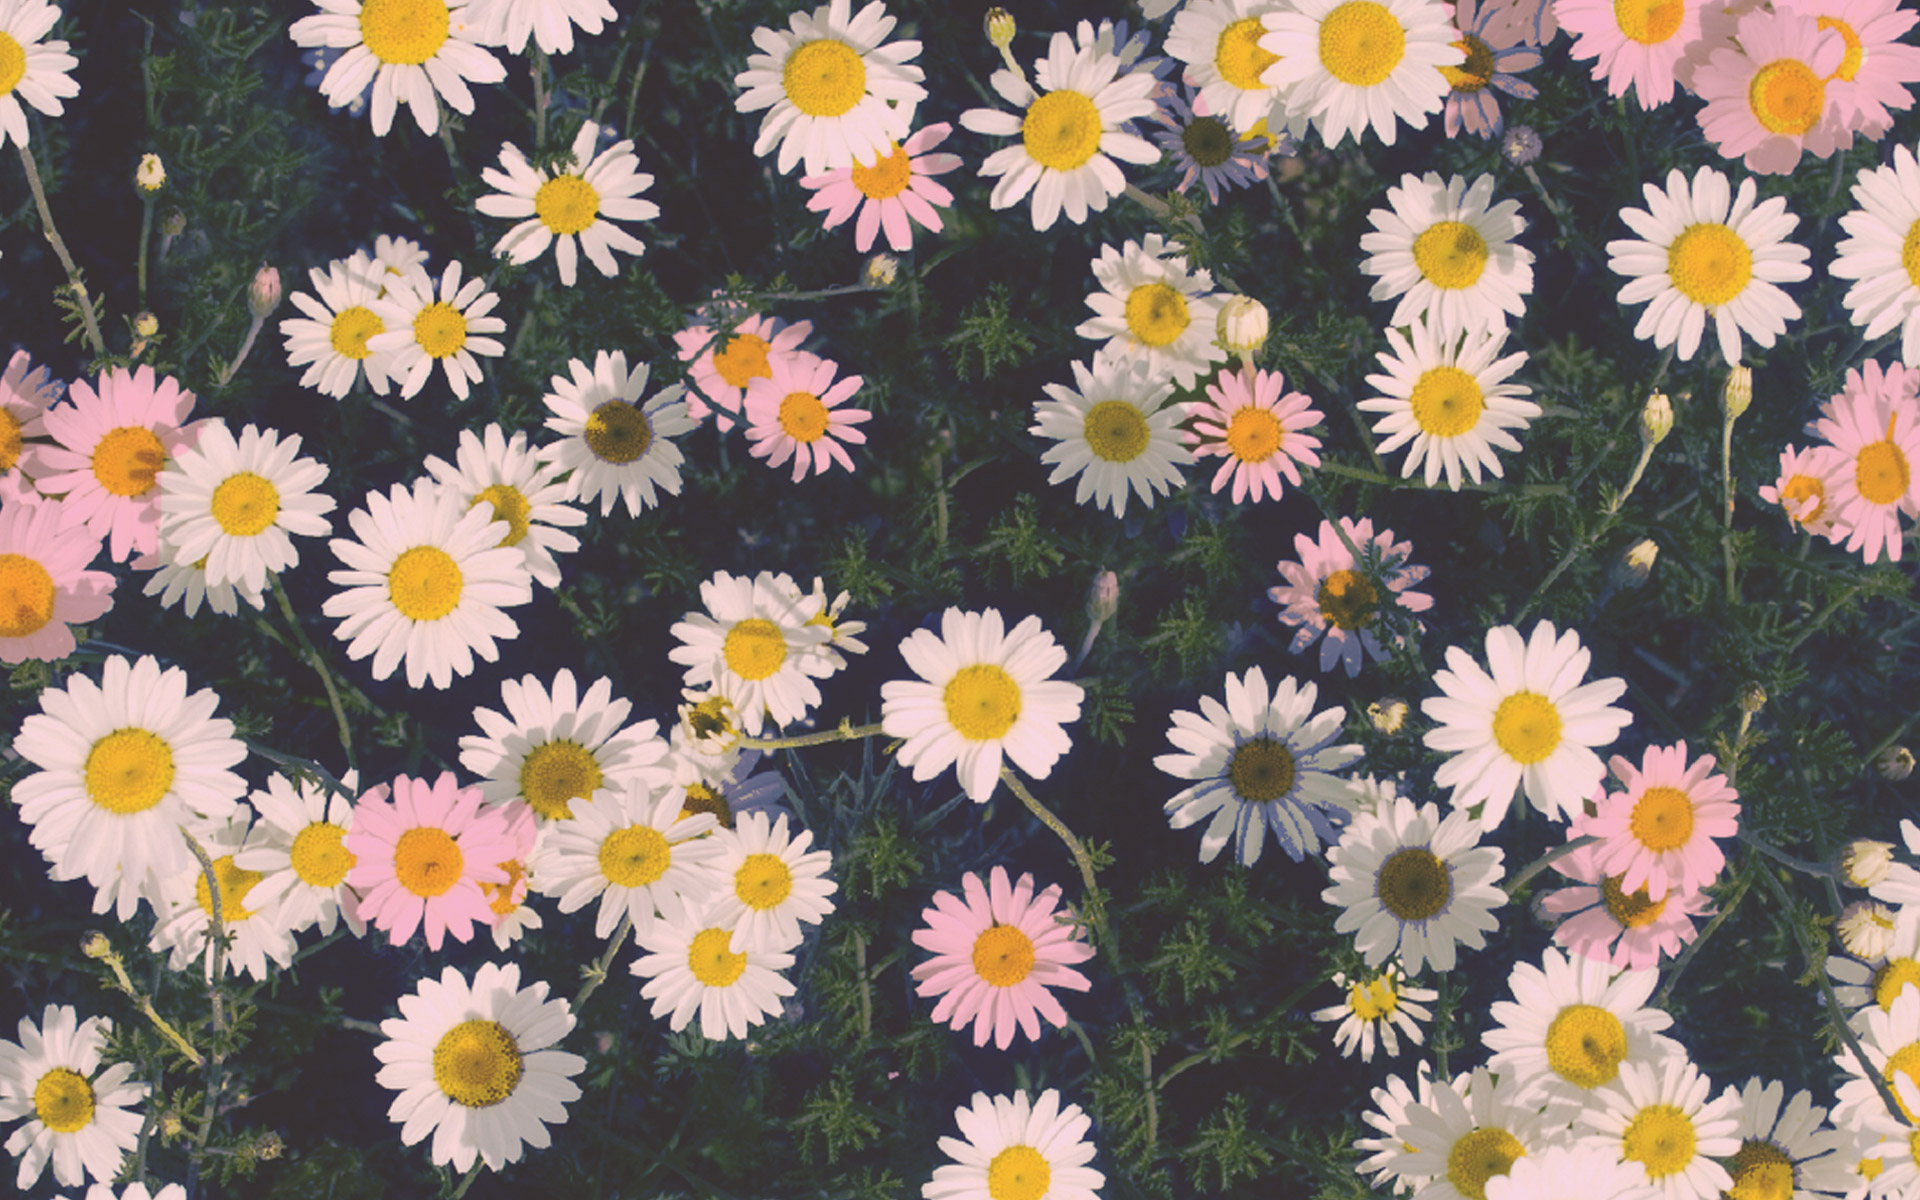 Daisy Hd Images Download With Amazing Background Images Download